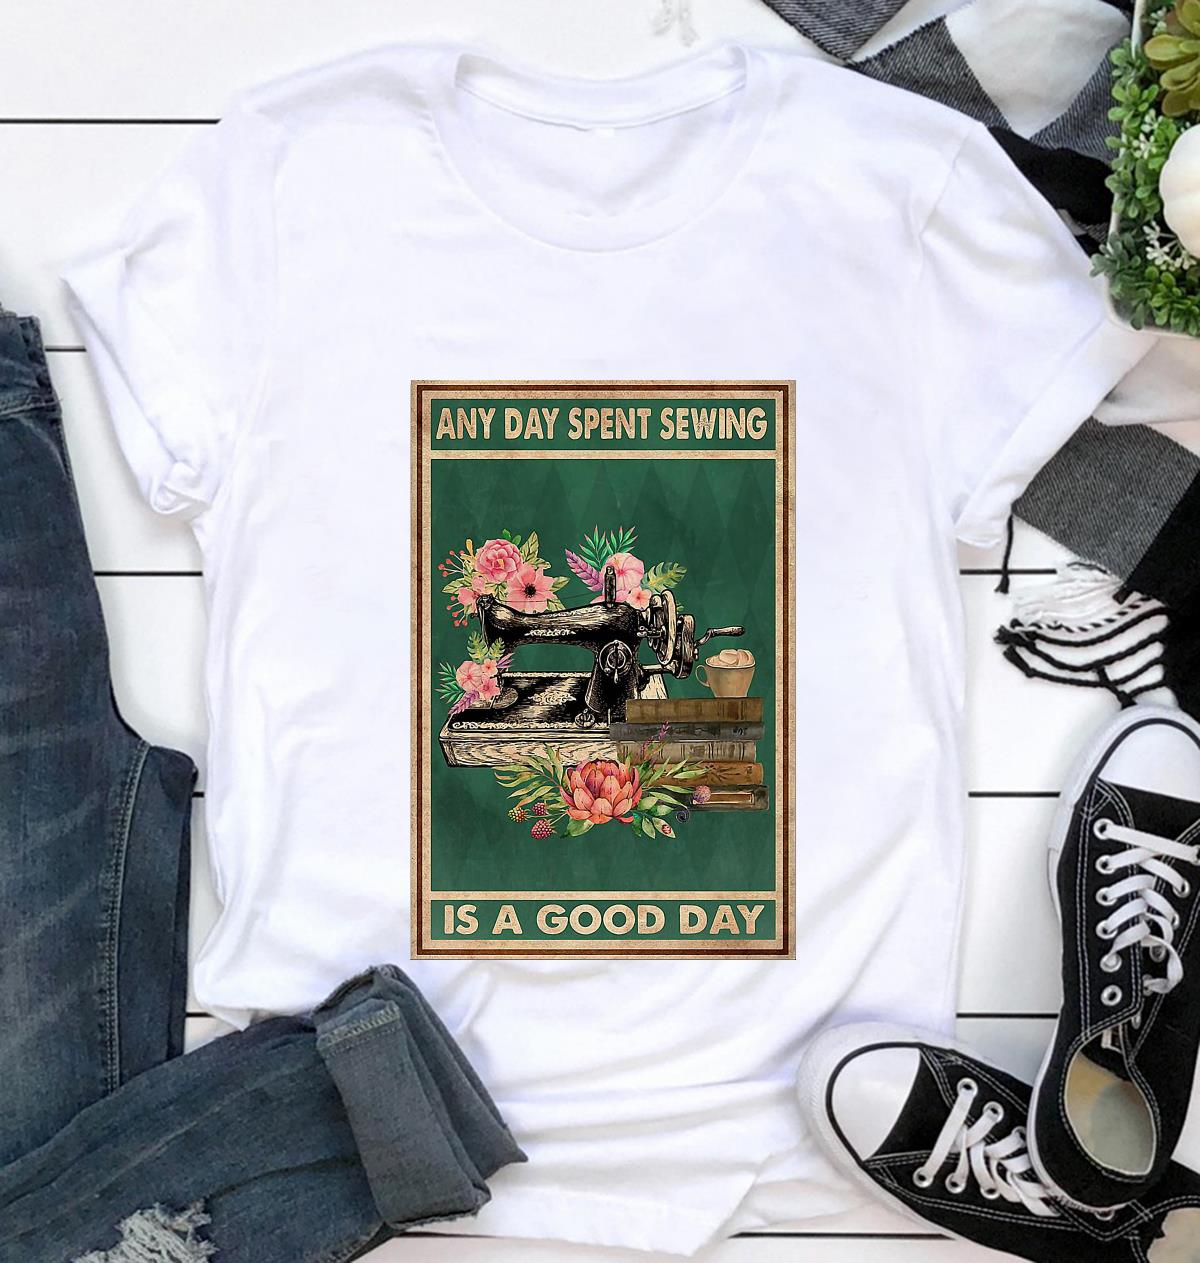 Any day spent sewing is a good day poster t-shirt